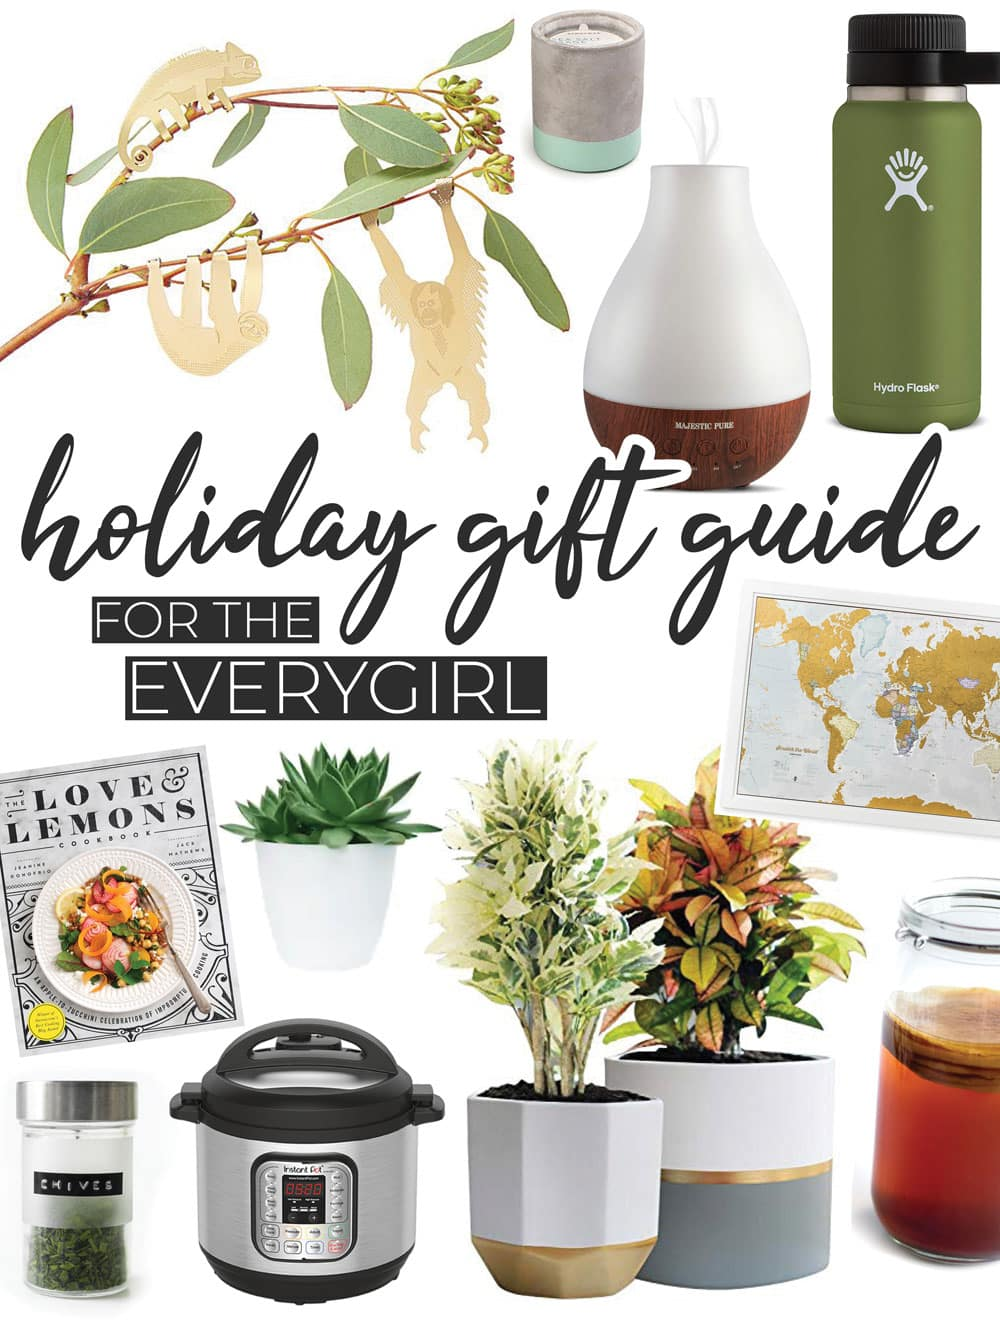 A 2018 holiday gift guide for her, from the cozy homebody to the cooking enthusiast to the cookbook hoarder to the world traveler. These Christmas gift ideas are unique, affordable, and great for online Christmas shopping for friends! #giftguide #giftideas #christmasgifts #holidaygifts #onlineshopping #christmasshopping #holidayshopping #presents #christmaspresents